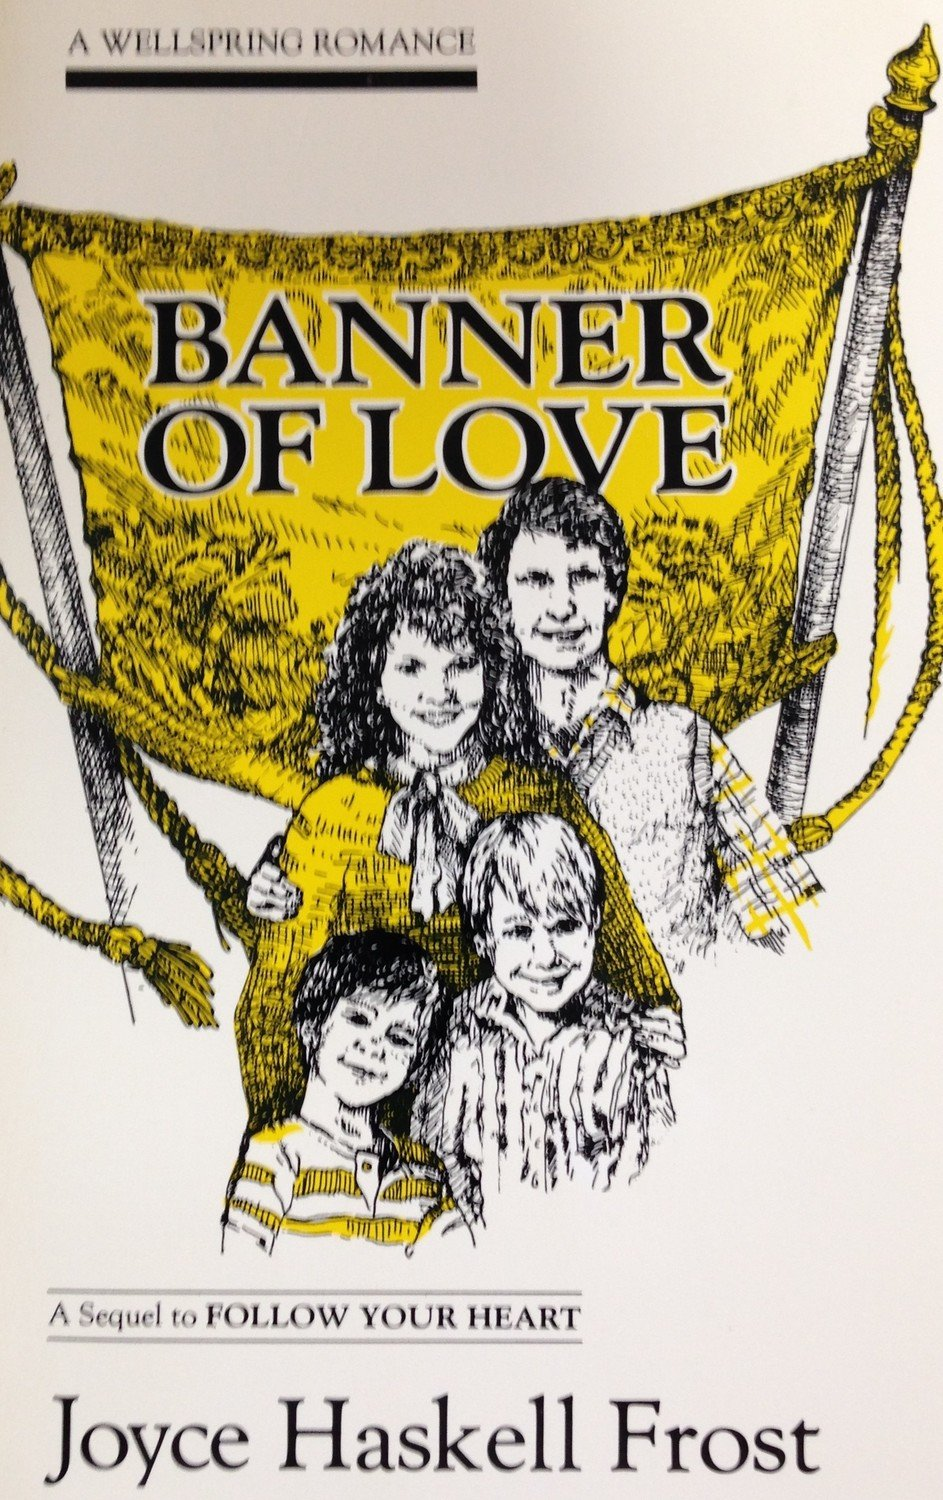 Banner of Love:  A Wellspring Romance by Joyce Haskell Frost